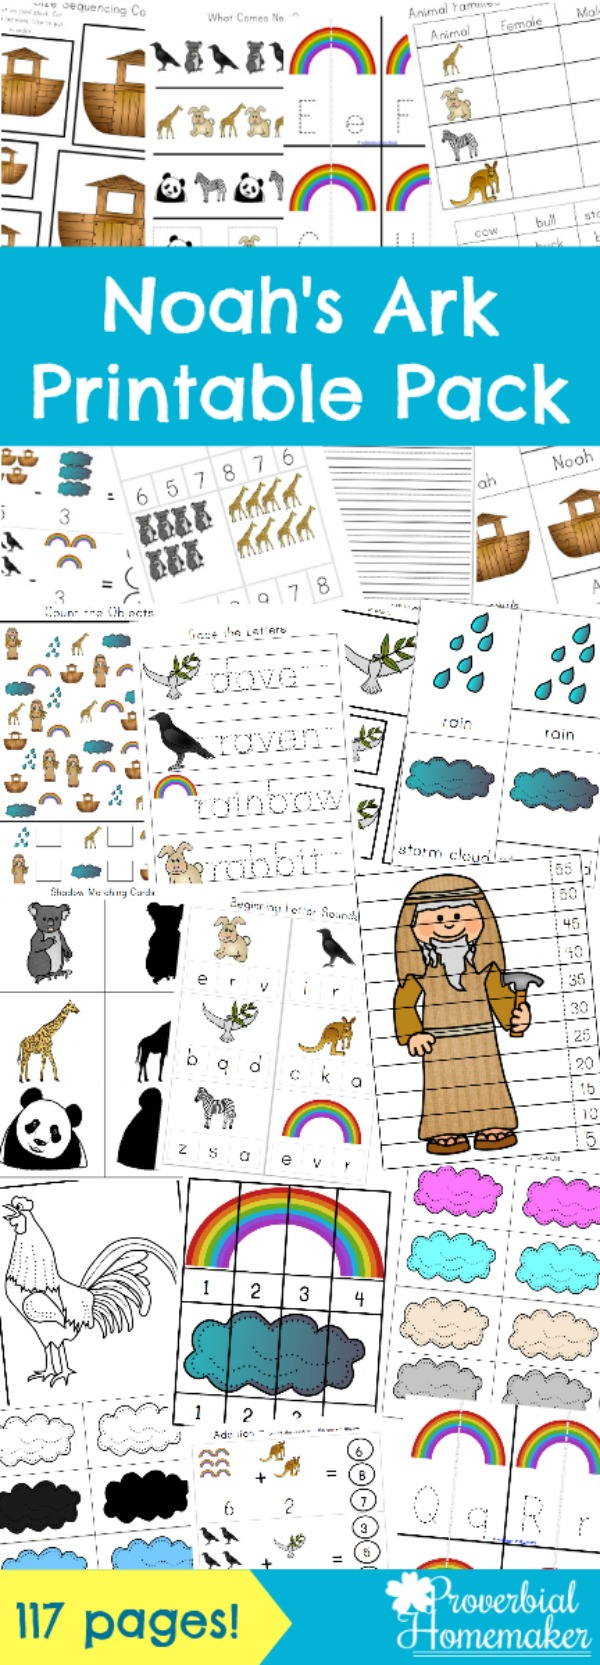 Teach your children about this wonderful Bible story with a Noah's Ark printable pack - 117 pages of scripture, activities, and more!